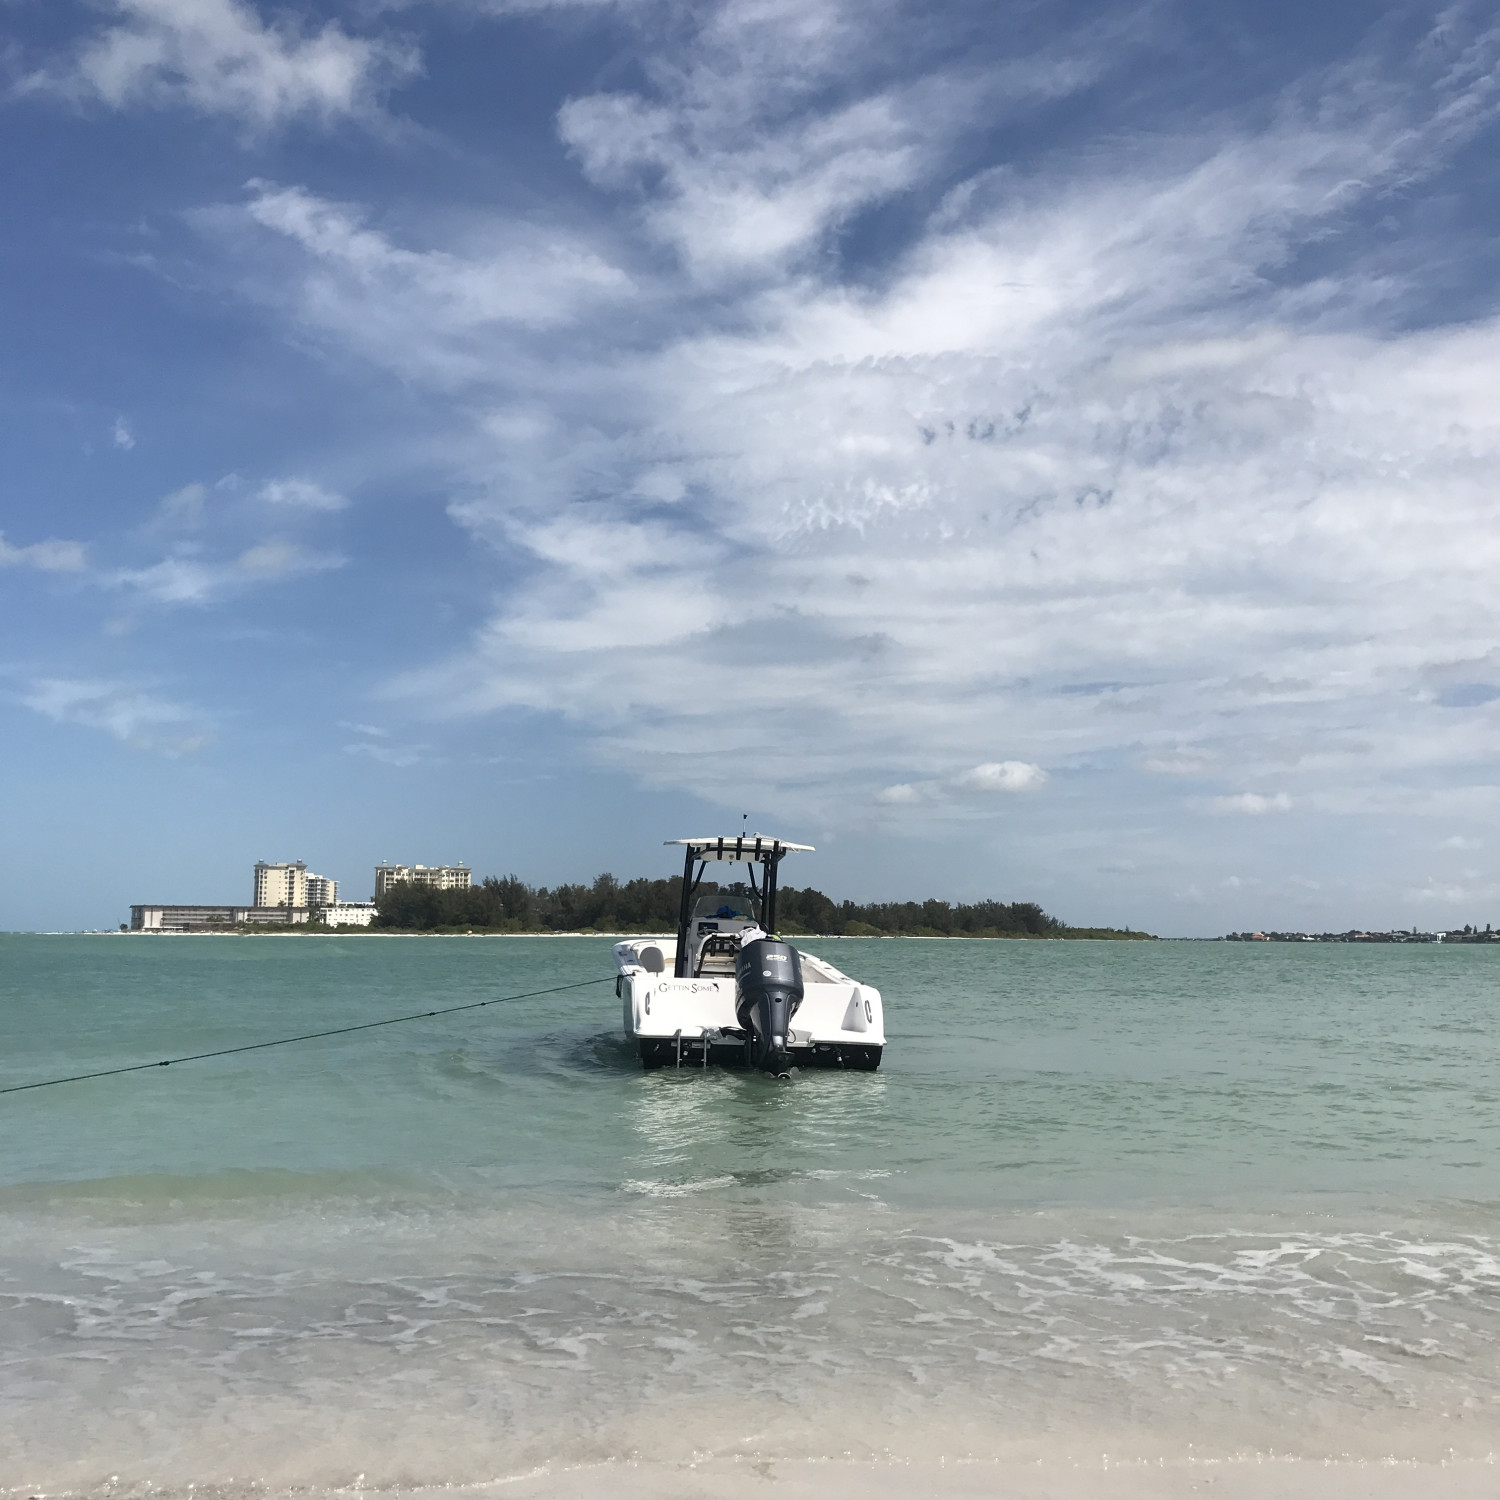 Title: South lido - On board their Sportsman Heritage 231 Center Console - Location: Sarasota Fl. Participating in the Photo Contest #SportsmanFebruary2018